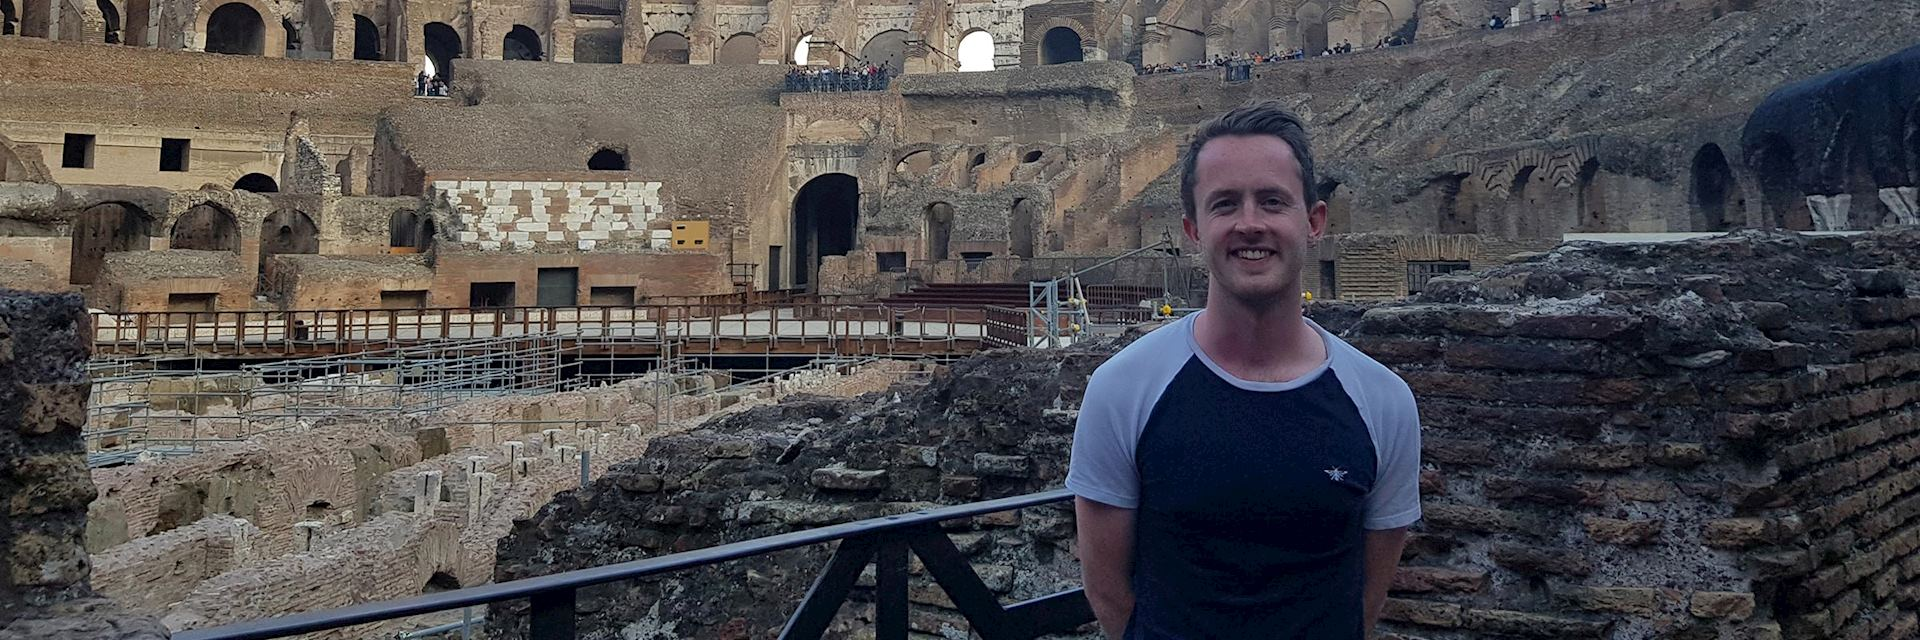 Henry visiting the Colosseum in Rome